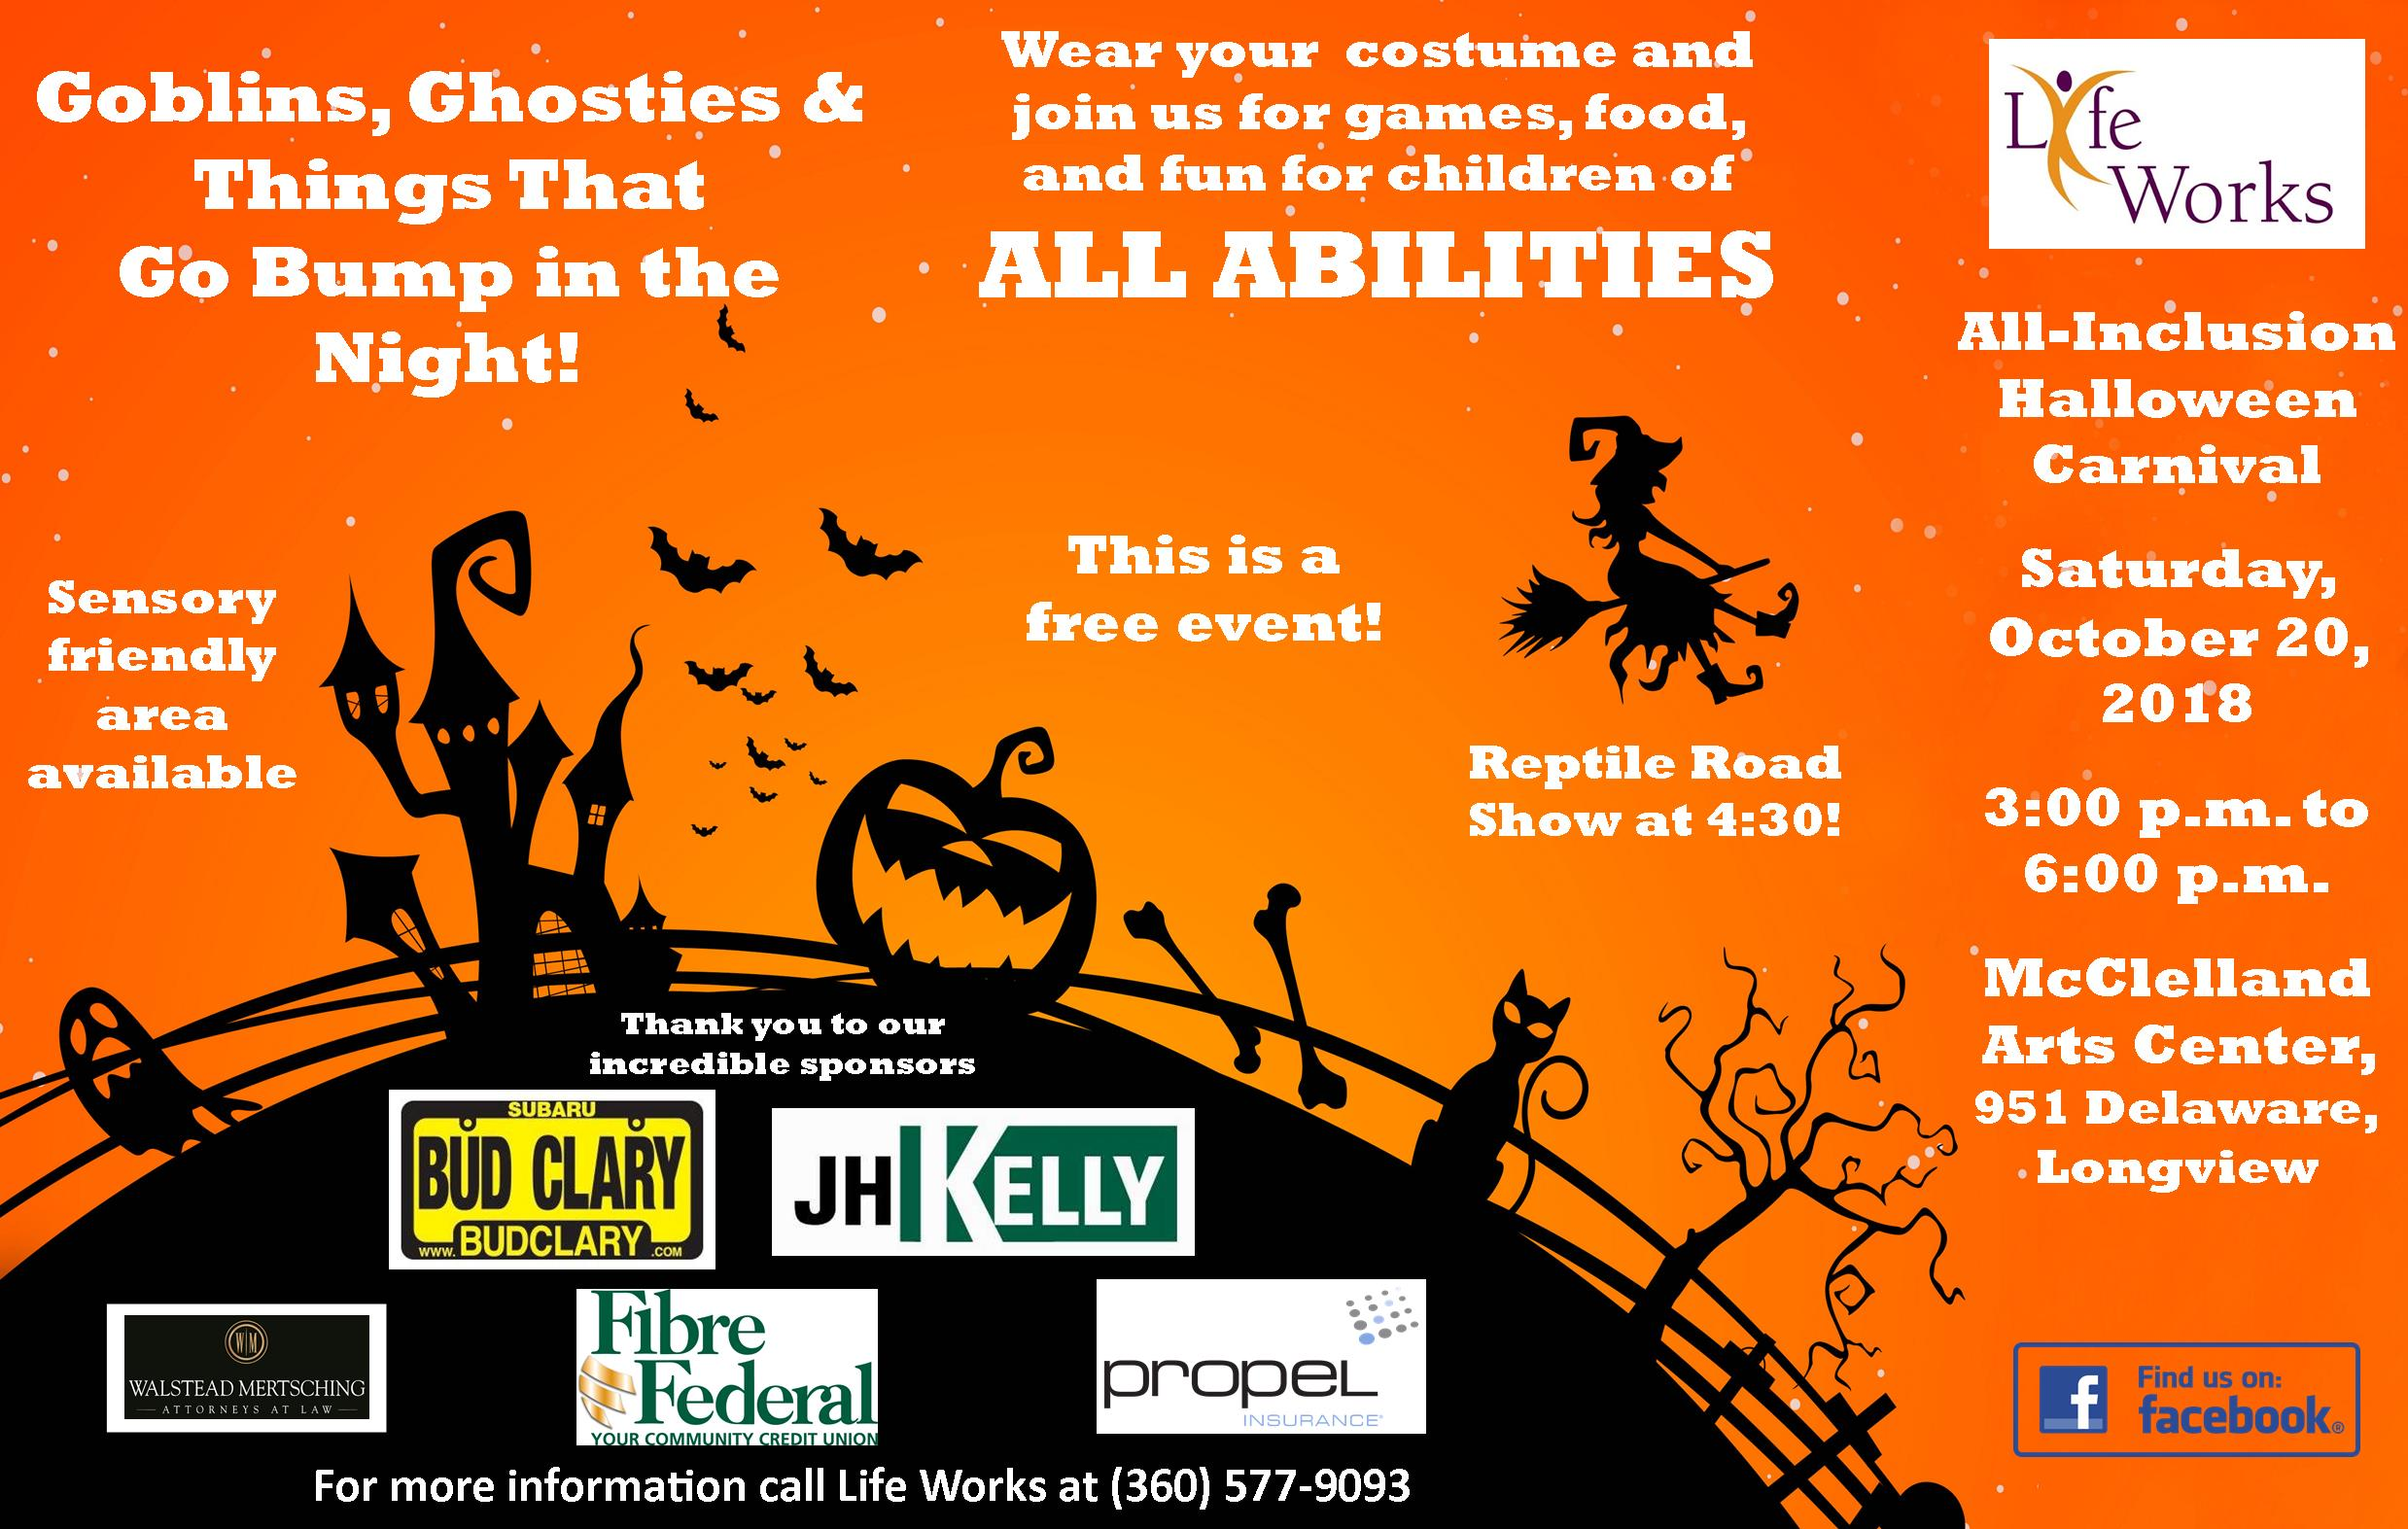 life works all inclusion halloween carnival | kelso longview chamber